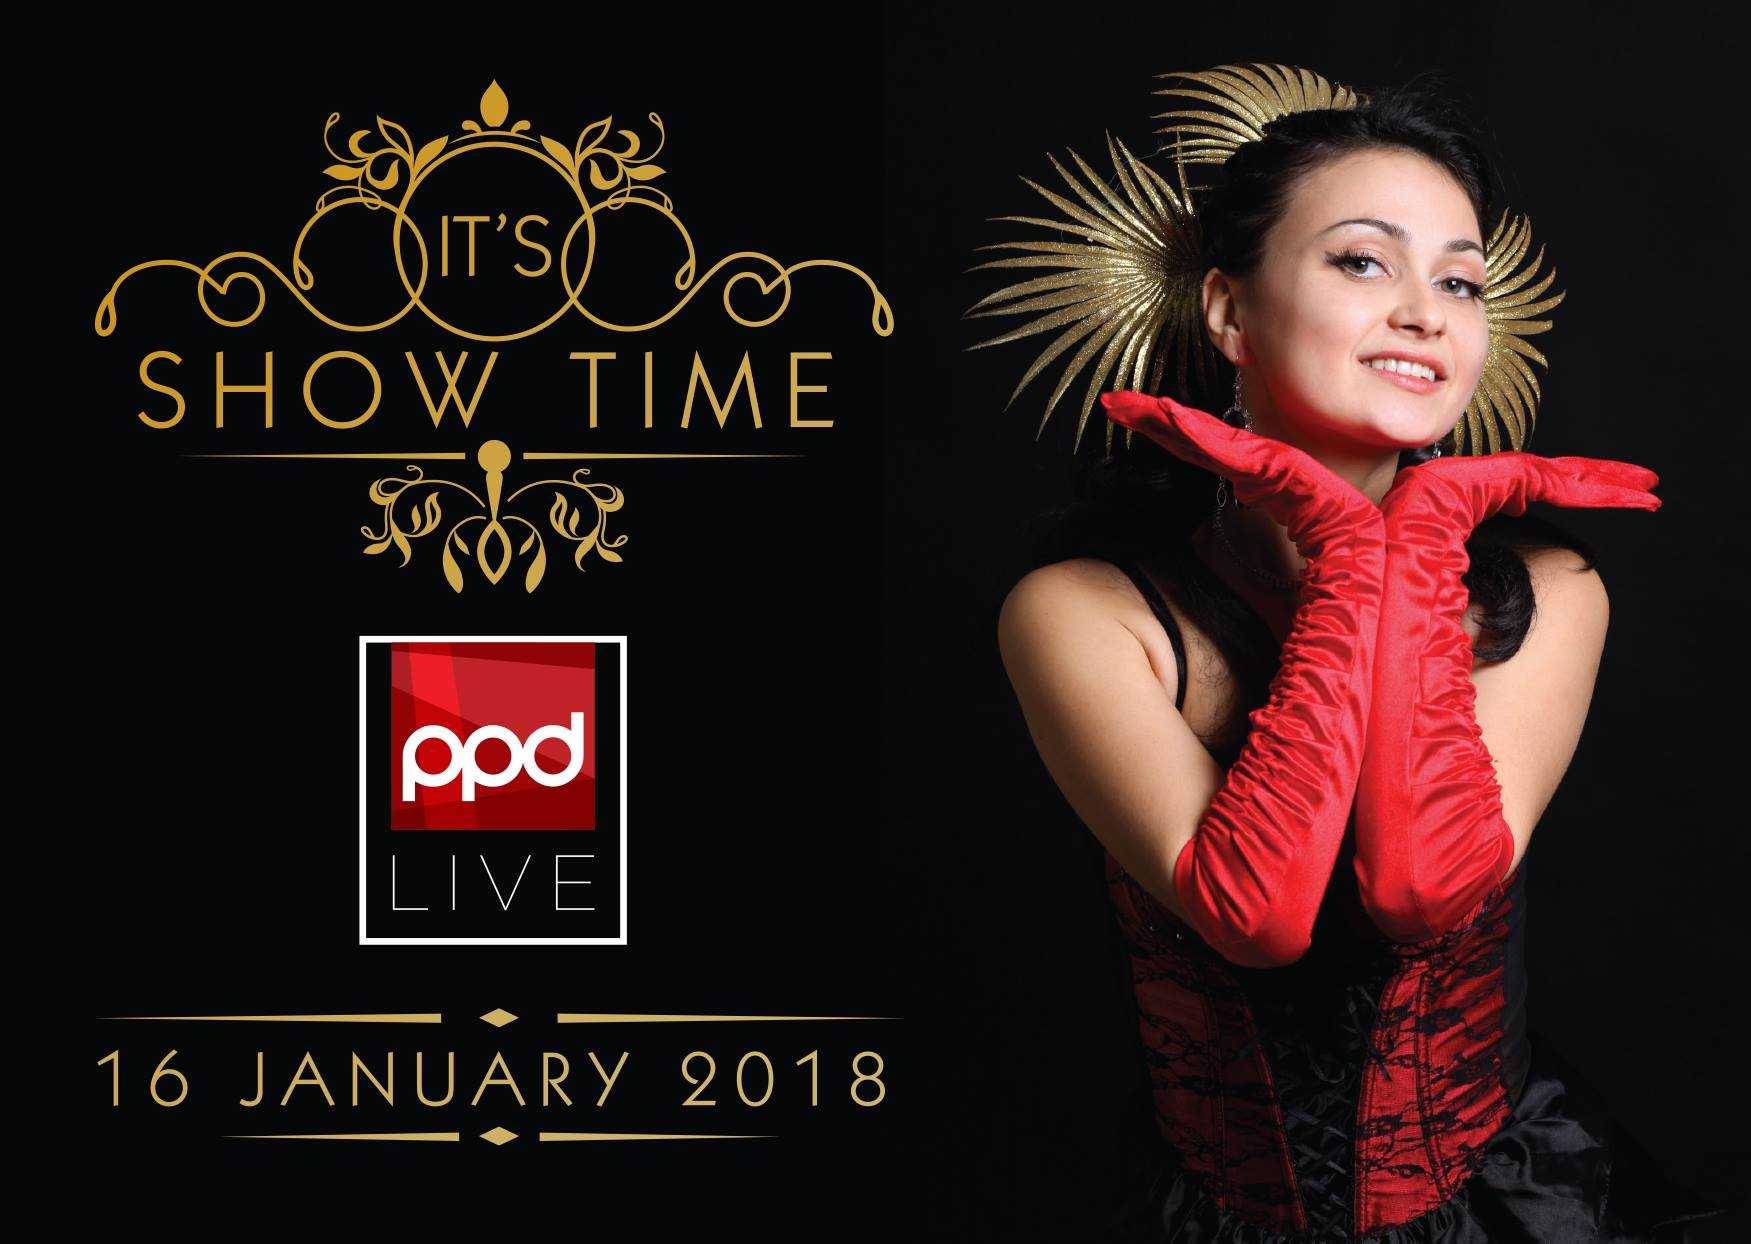 PPD Live Party 2018